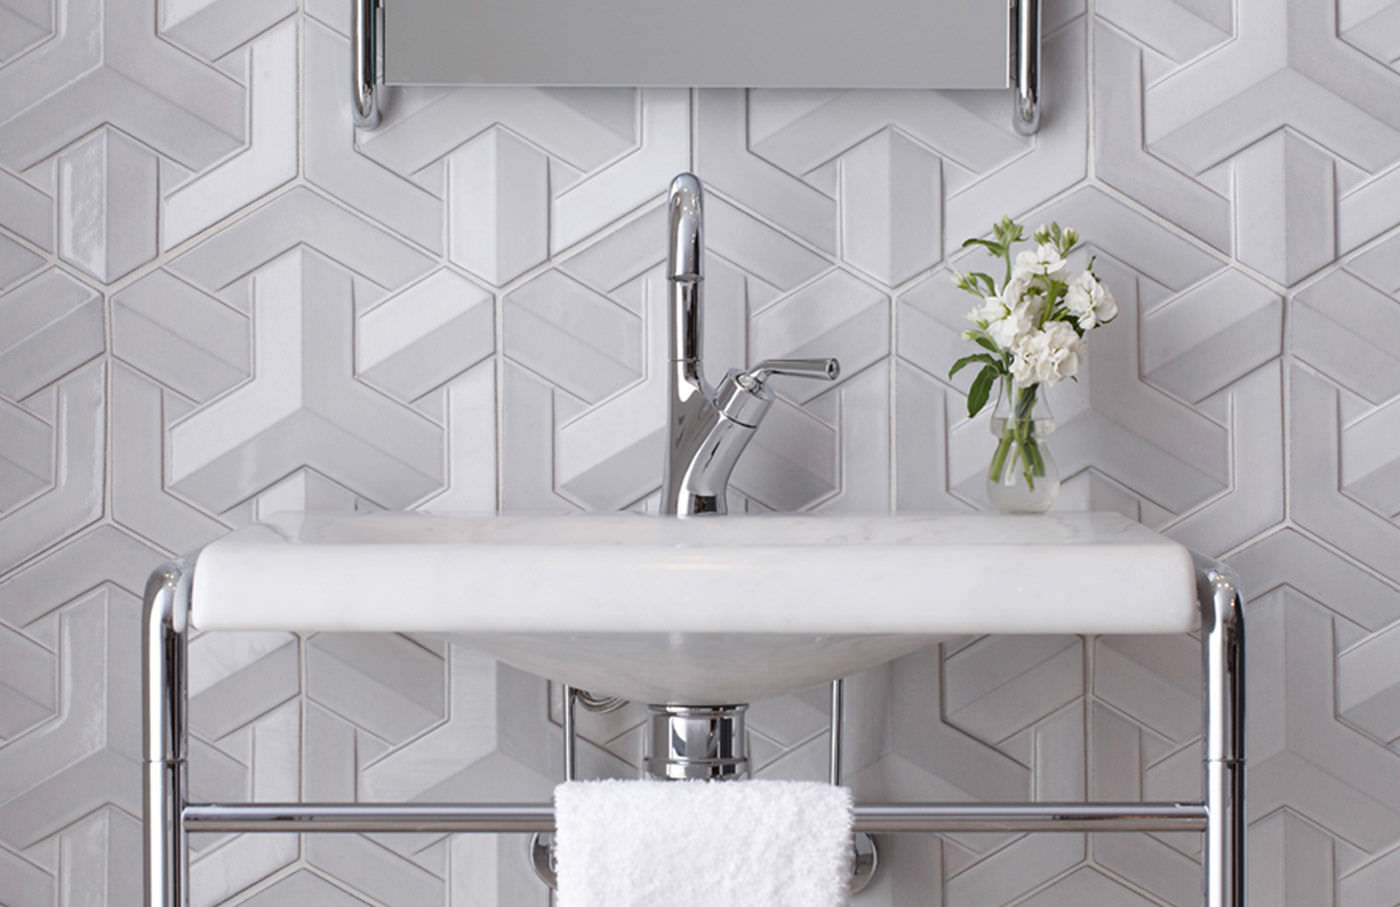 bathroom tile / wall / concrete / geometric pattern - geo weave